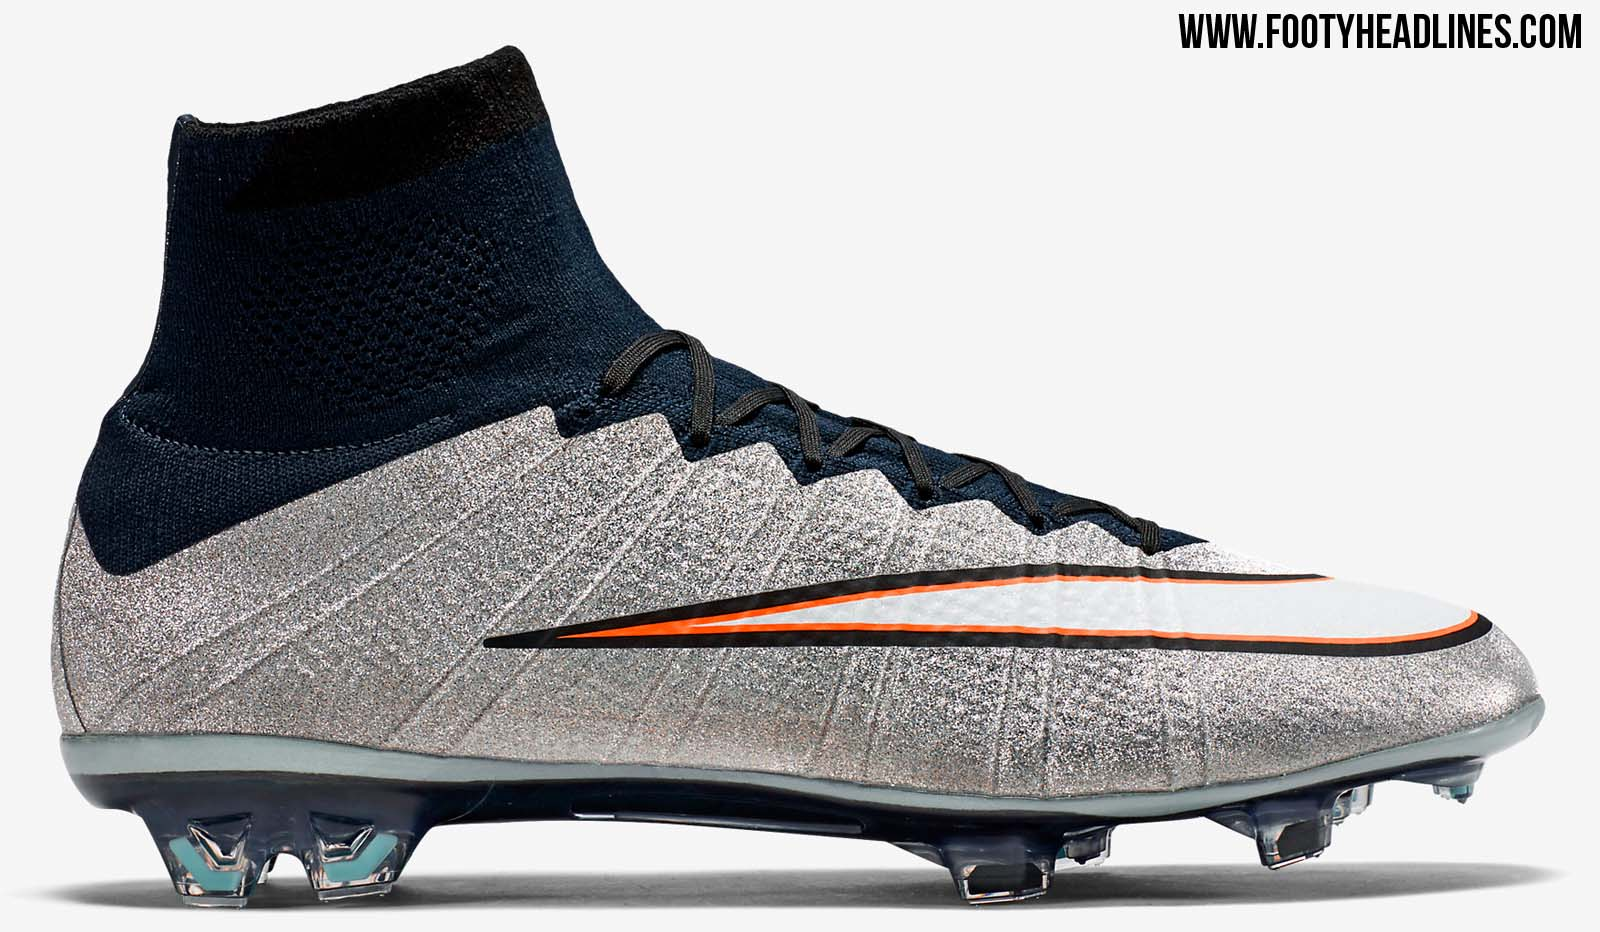 Mercurial Shoes Nike D